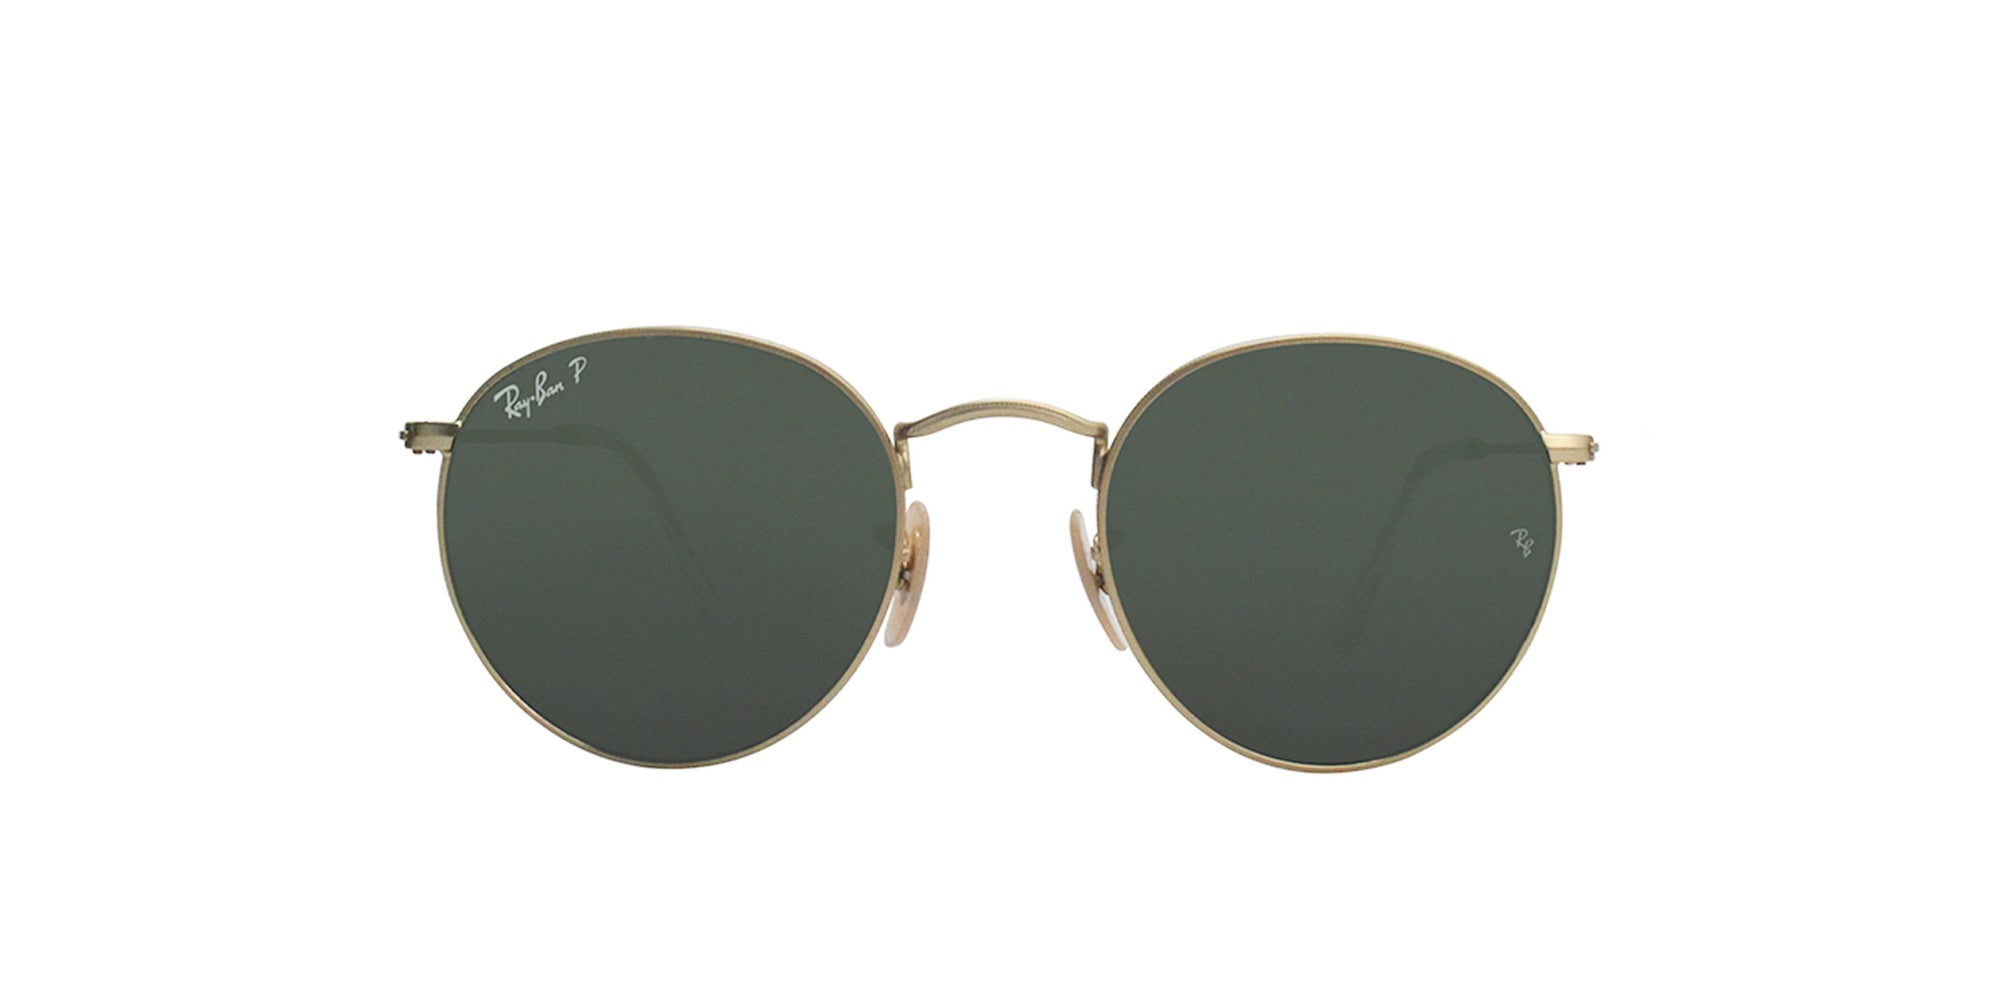 Ray Ban - Round Metal Gold Oval Unisex Sunglasses - 50mm-Sunglasses-Designer Eyes